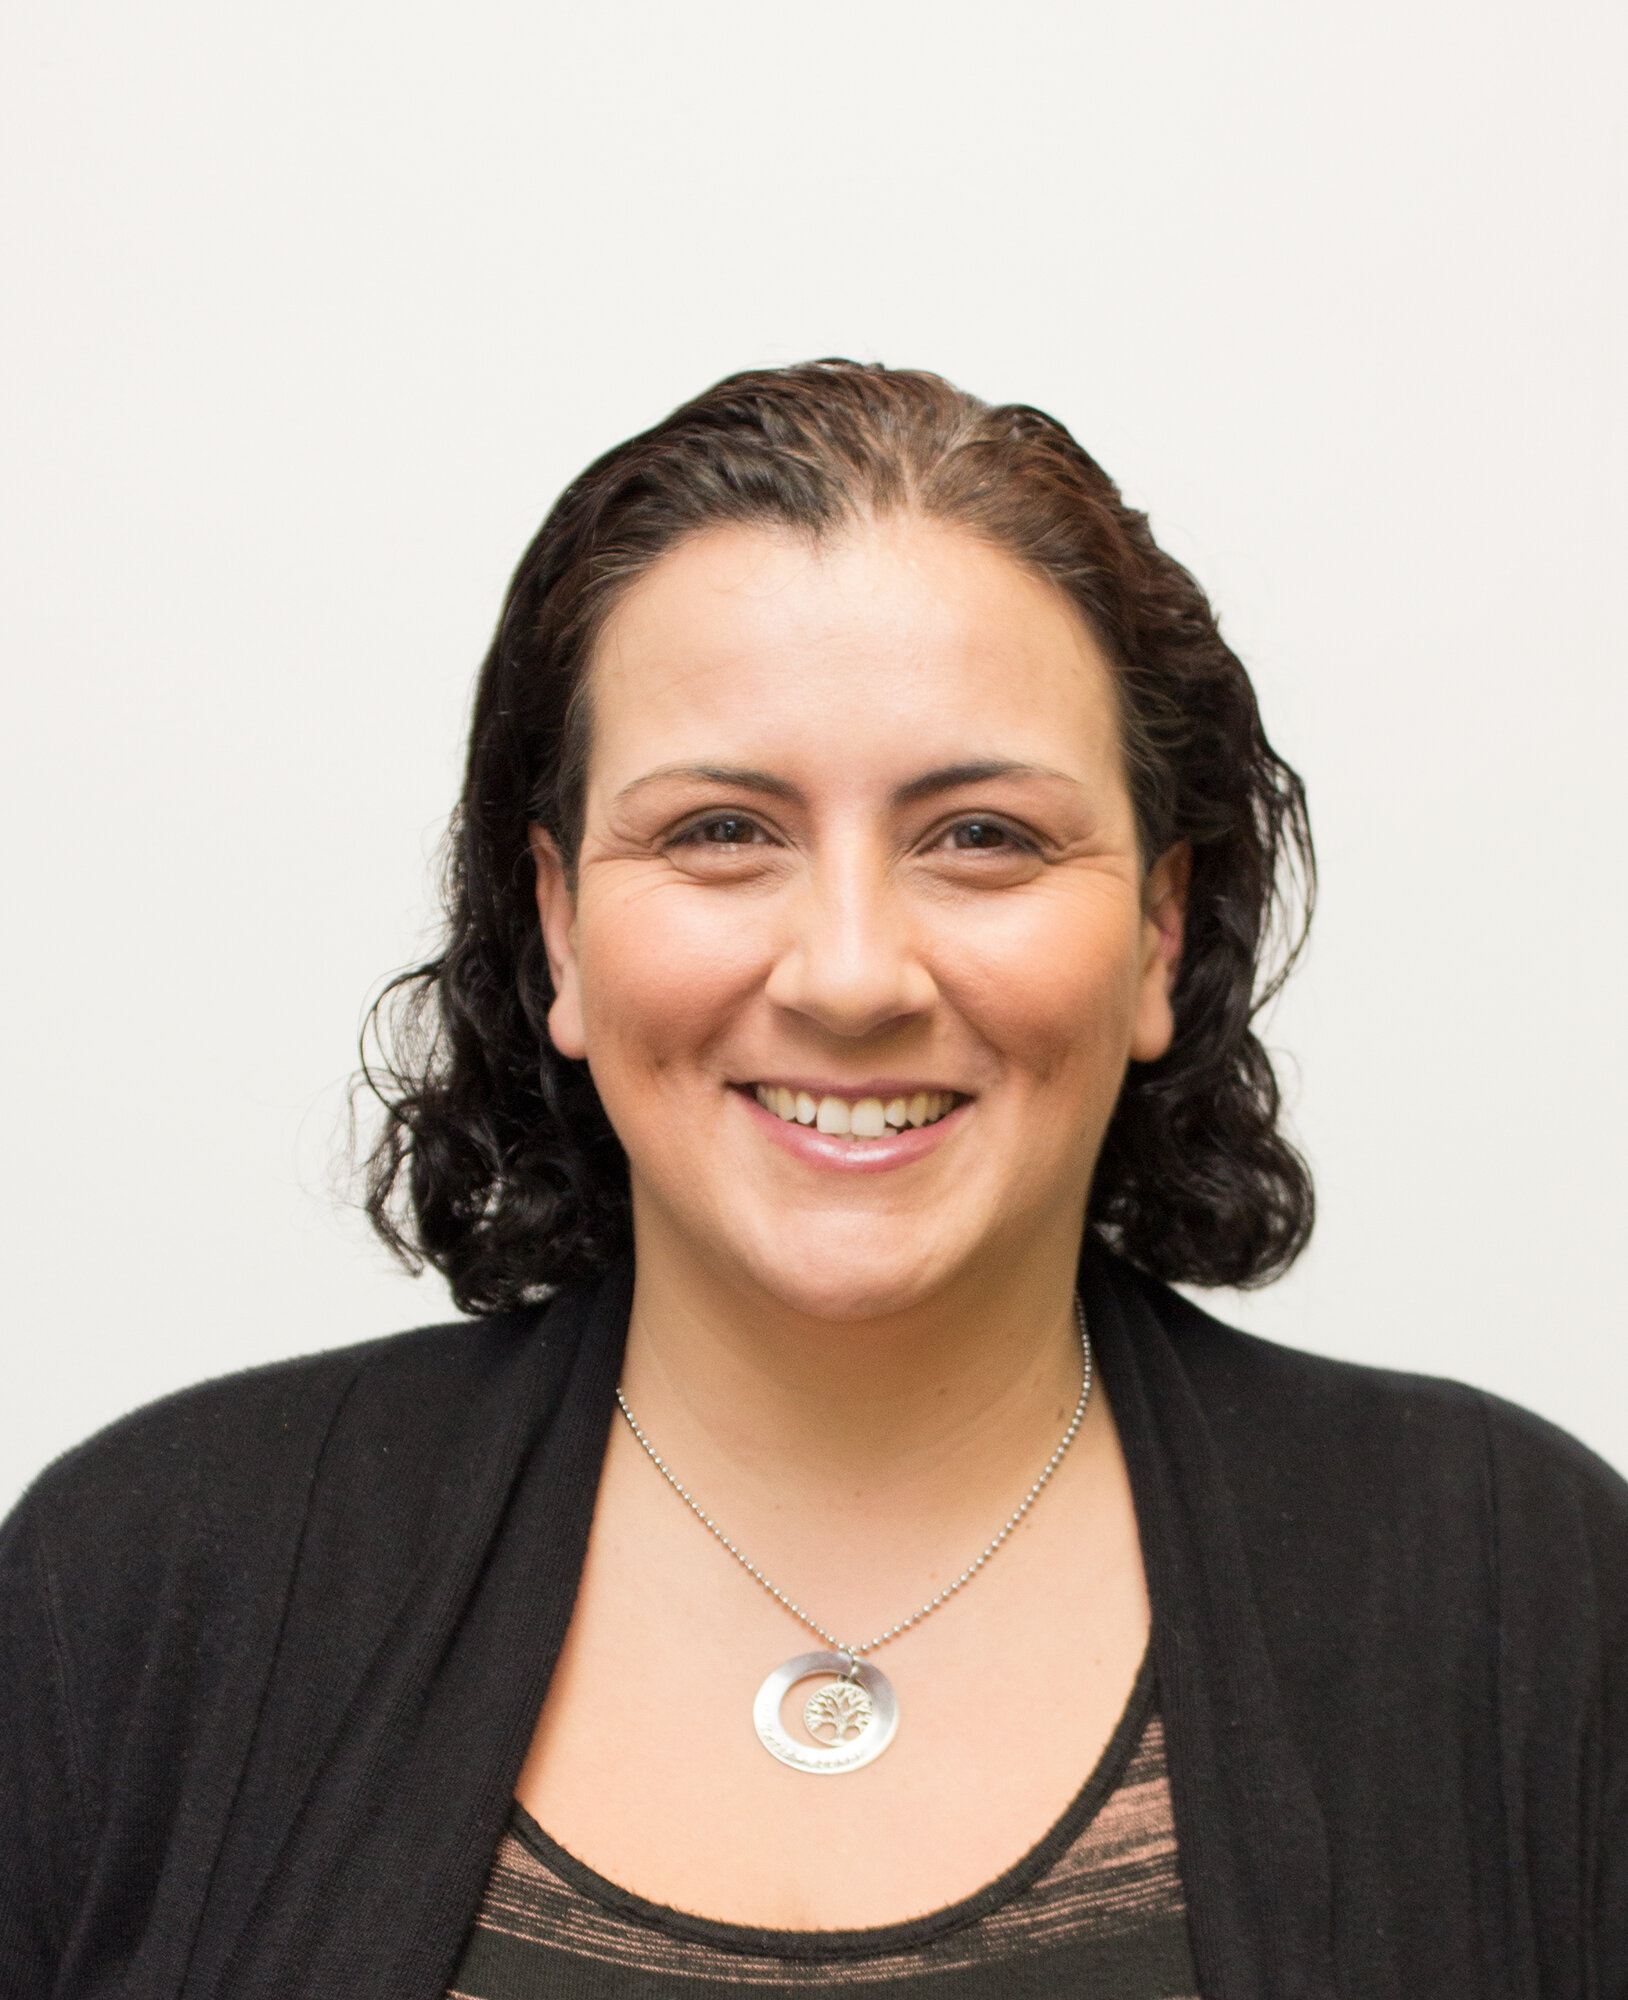 Kelly Mikunda - Customer Service Manager  Kelly completed a Bachelor in Marketing and IT and has over 20 years experience in administrative roles ranging from office management to executive support. She is consumer focused and has applied her extensive knowledge of kids apps and programs to ensure that TalkiPlay is user friendly and fun to use! She is the mother to two boys and on the weekends enjoys spending time with them - and baking up yummy things to eat!